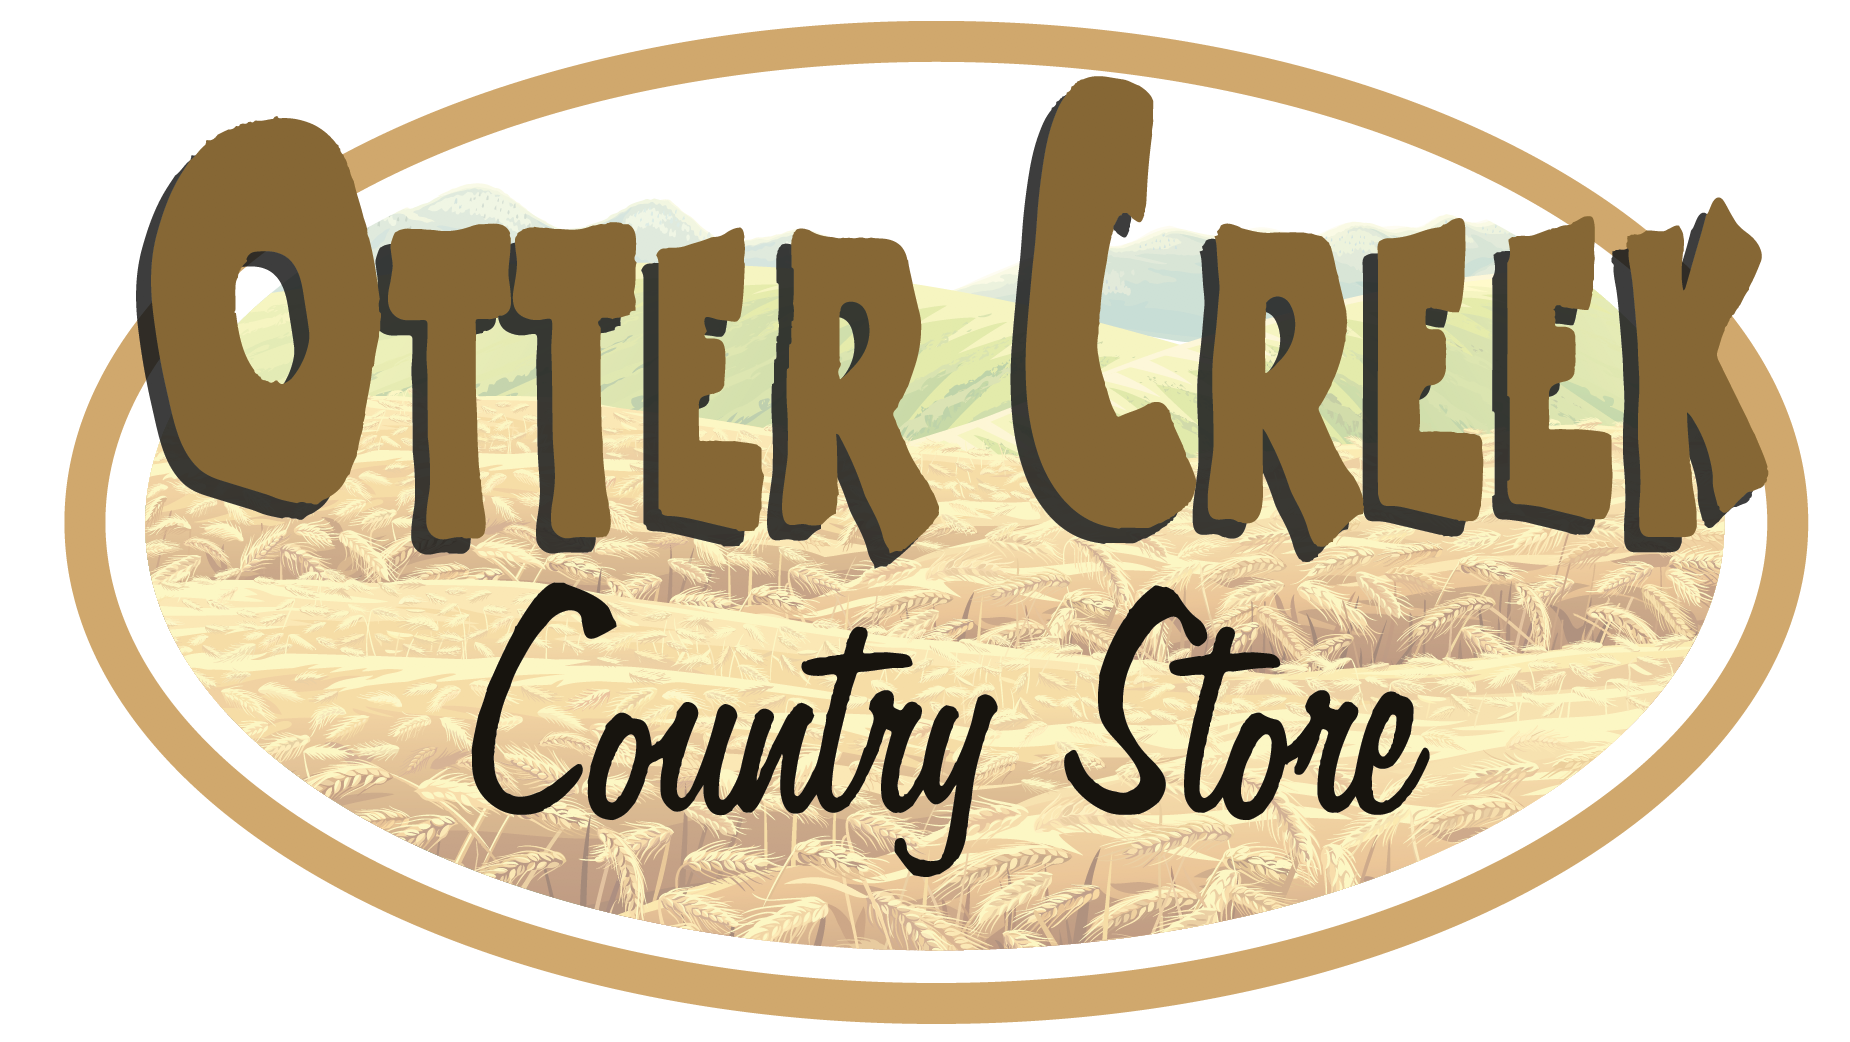 Otter Creek Country Stores, Inc